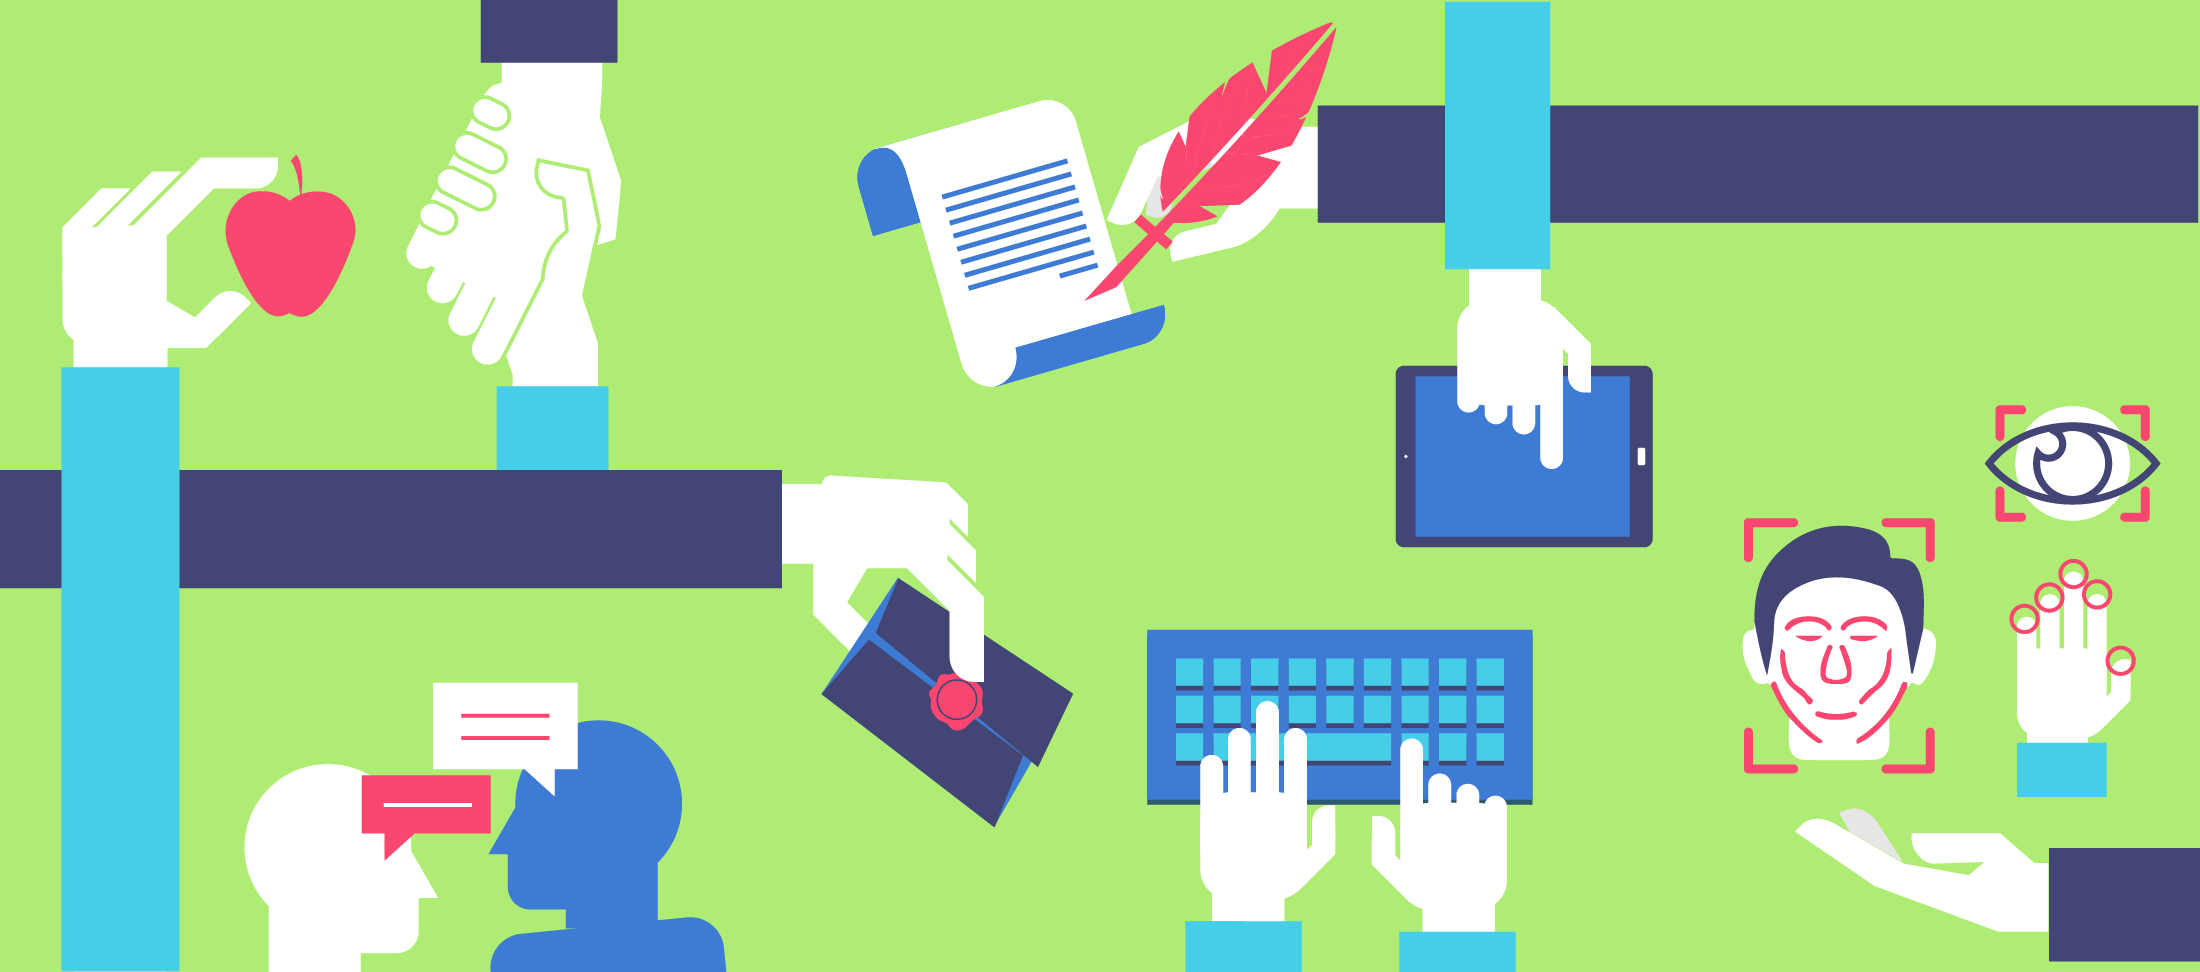 The Paperless Journey, The Evolution and Future of Document Signing